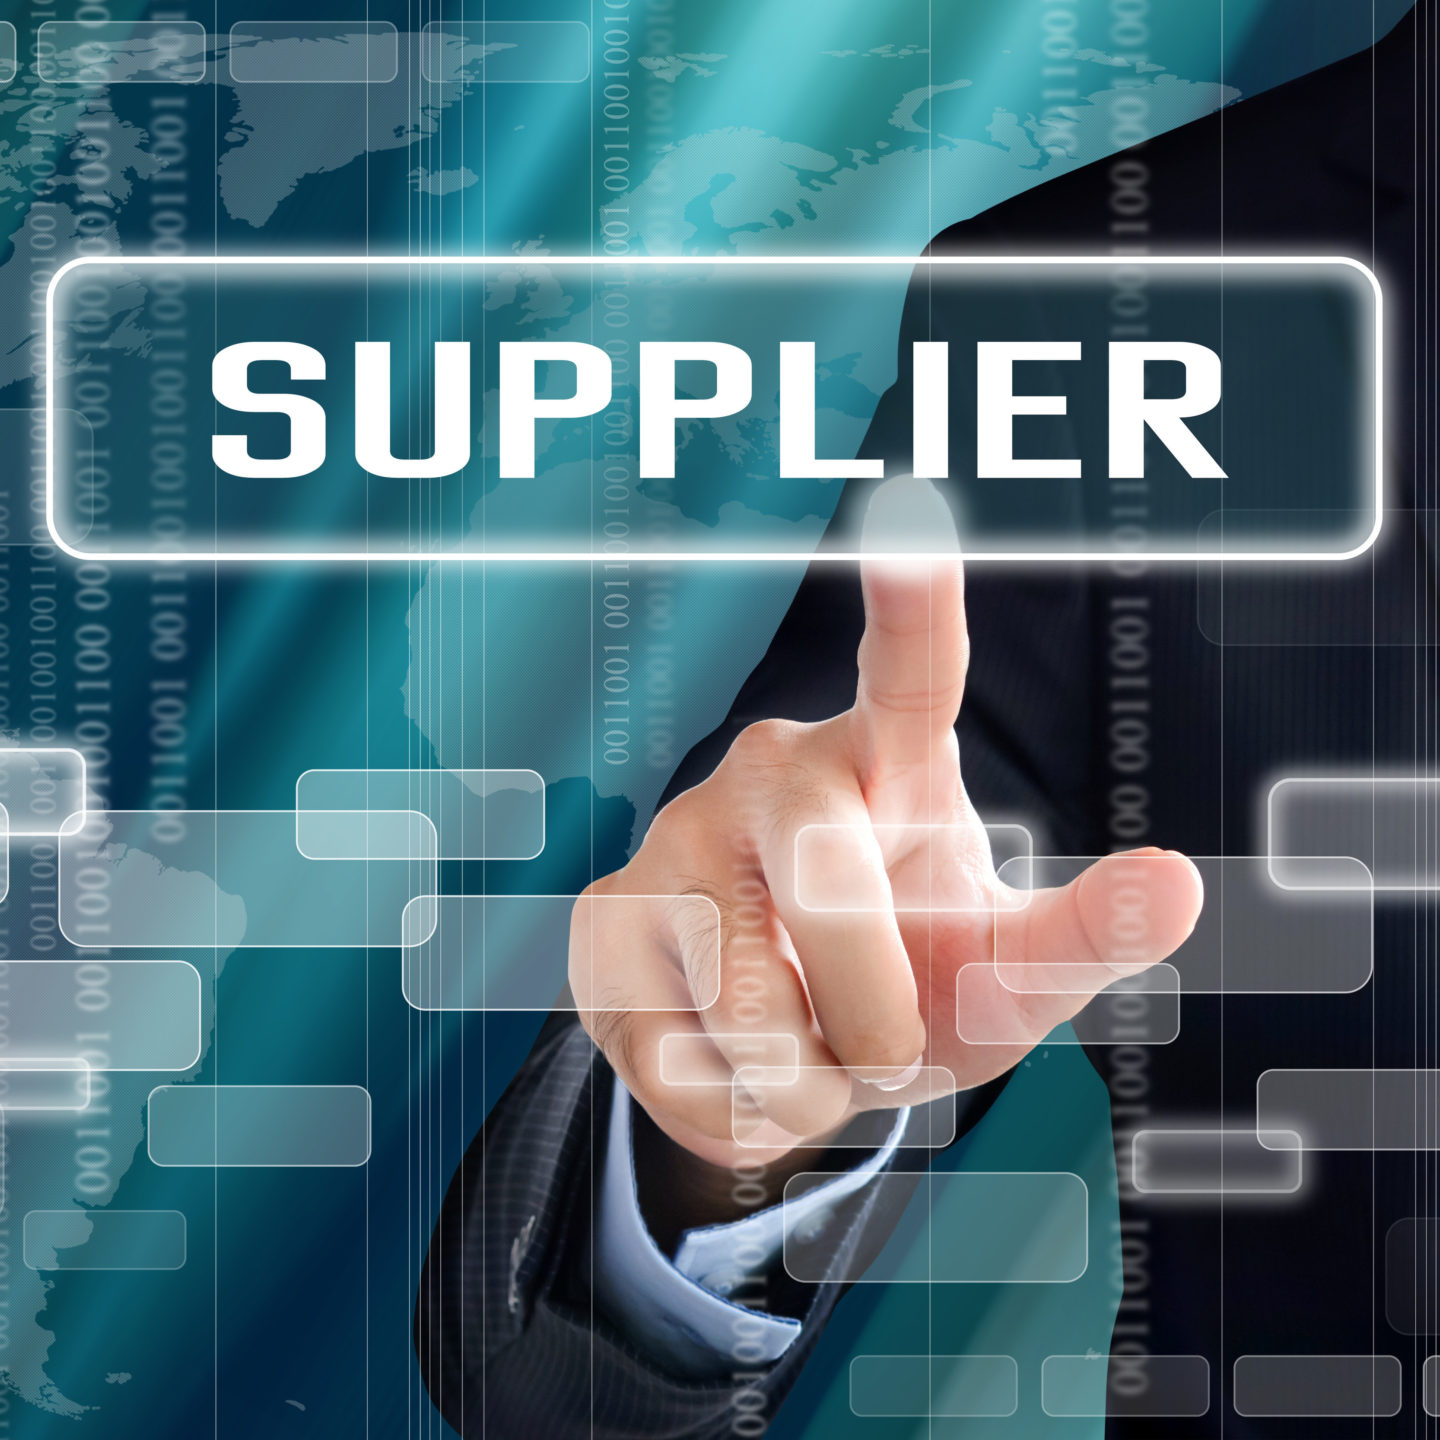 Supplier words on screen